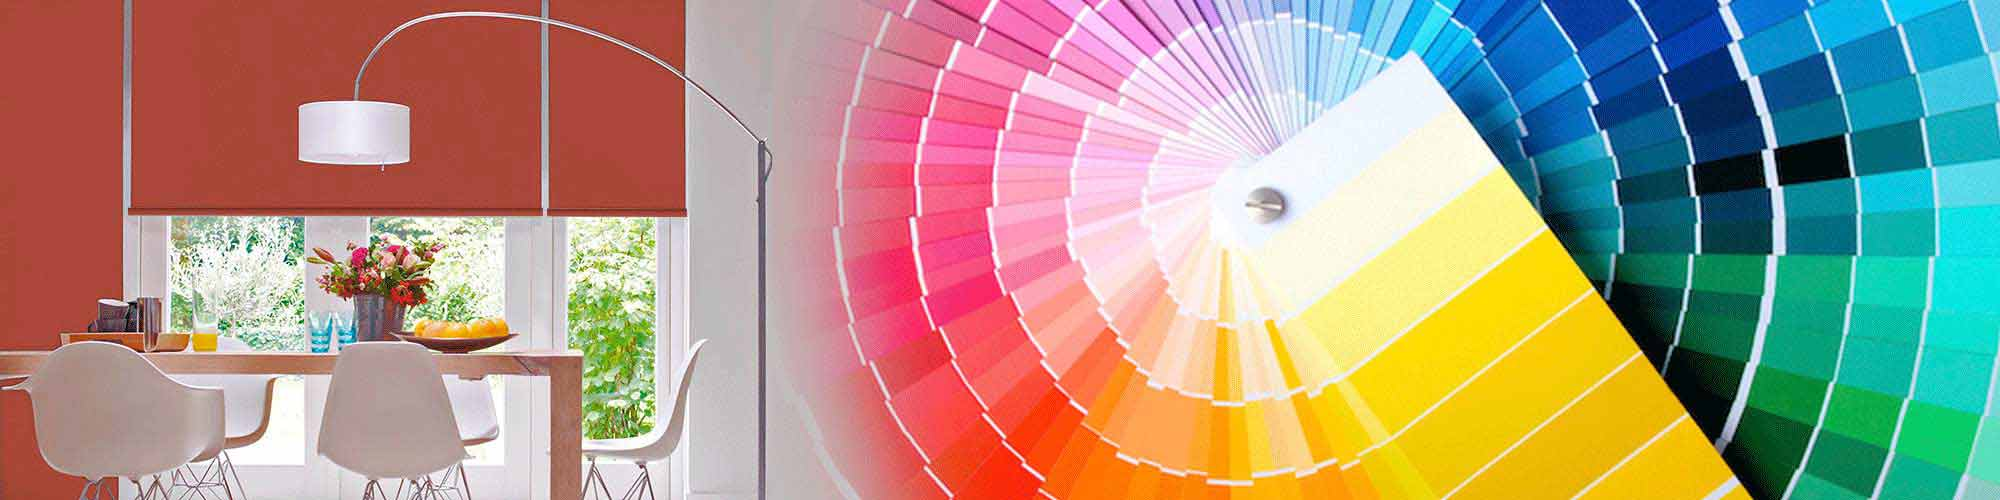 anycolour blinds dubai